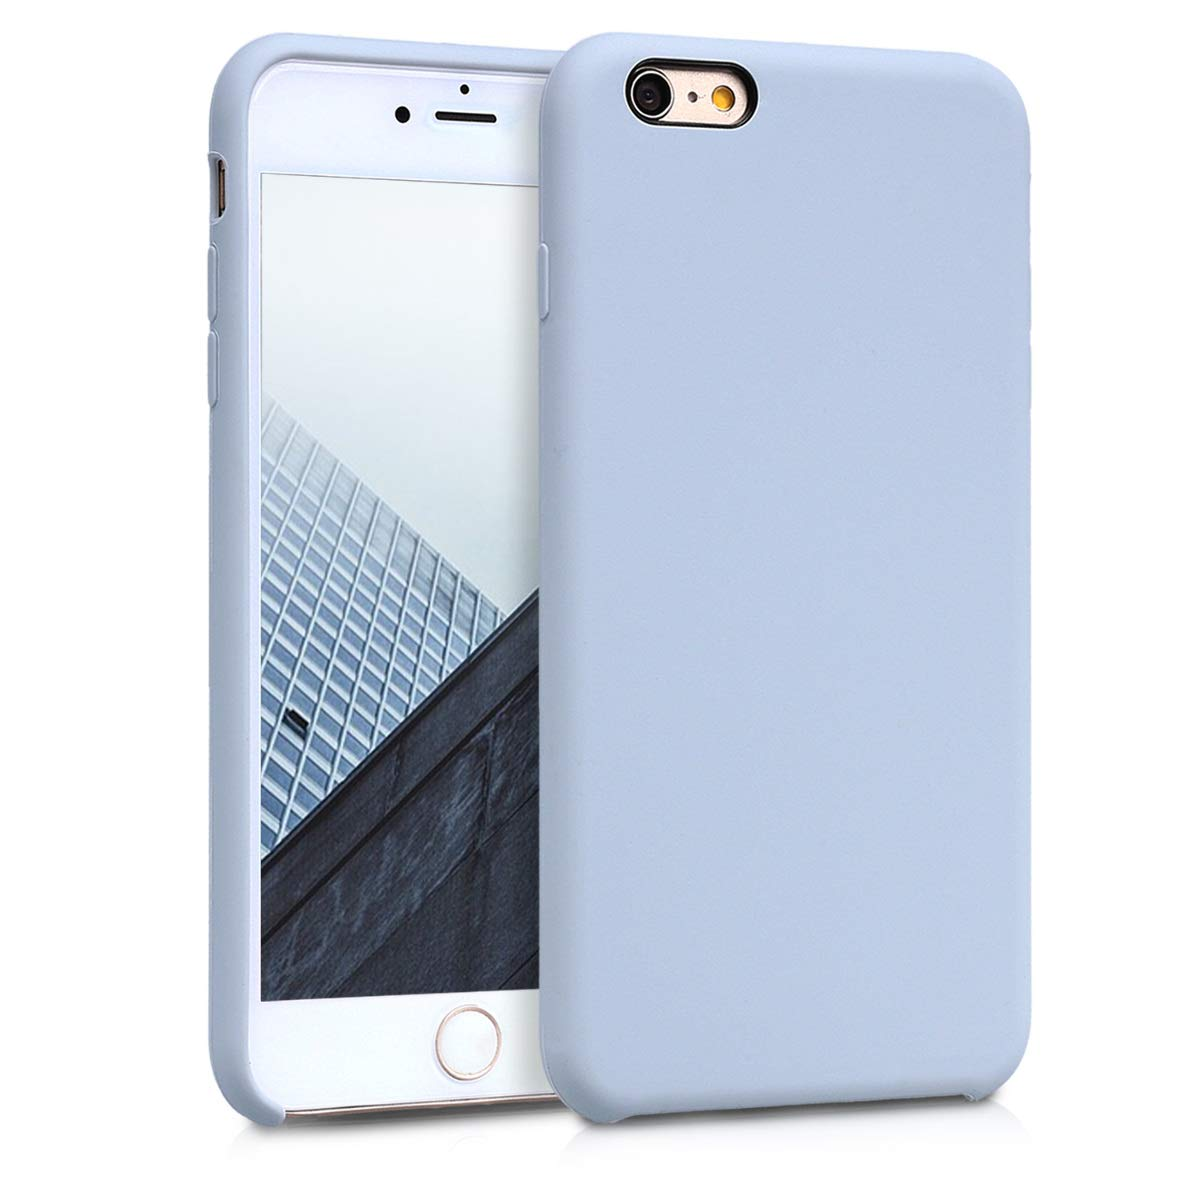 6S Plus kwmobile TPU Silicone Case for Apple iPhone 6 Plus Light Grey Matte Soft Flexible Rubber Protective Cover